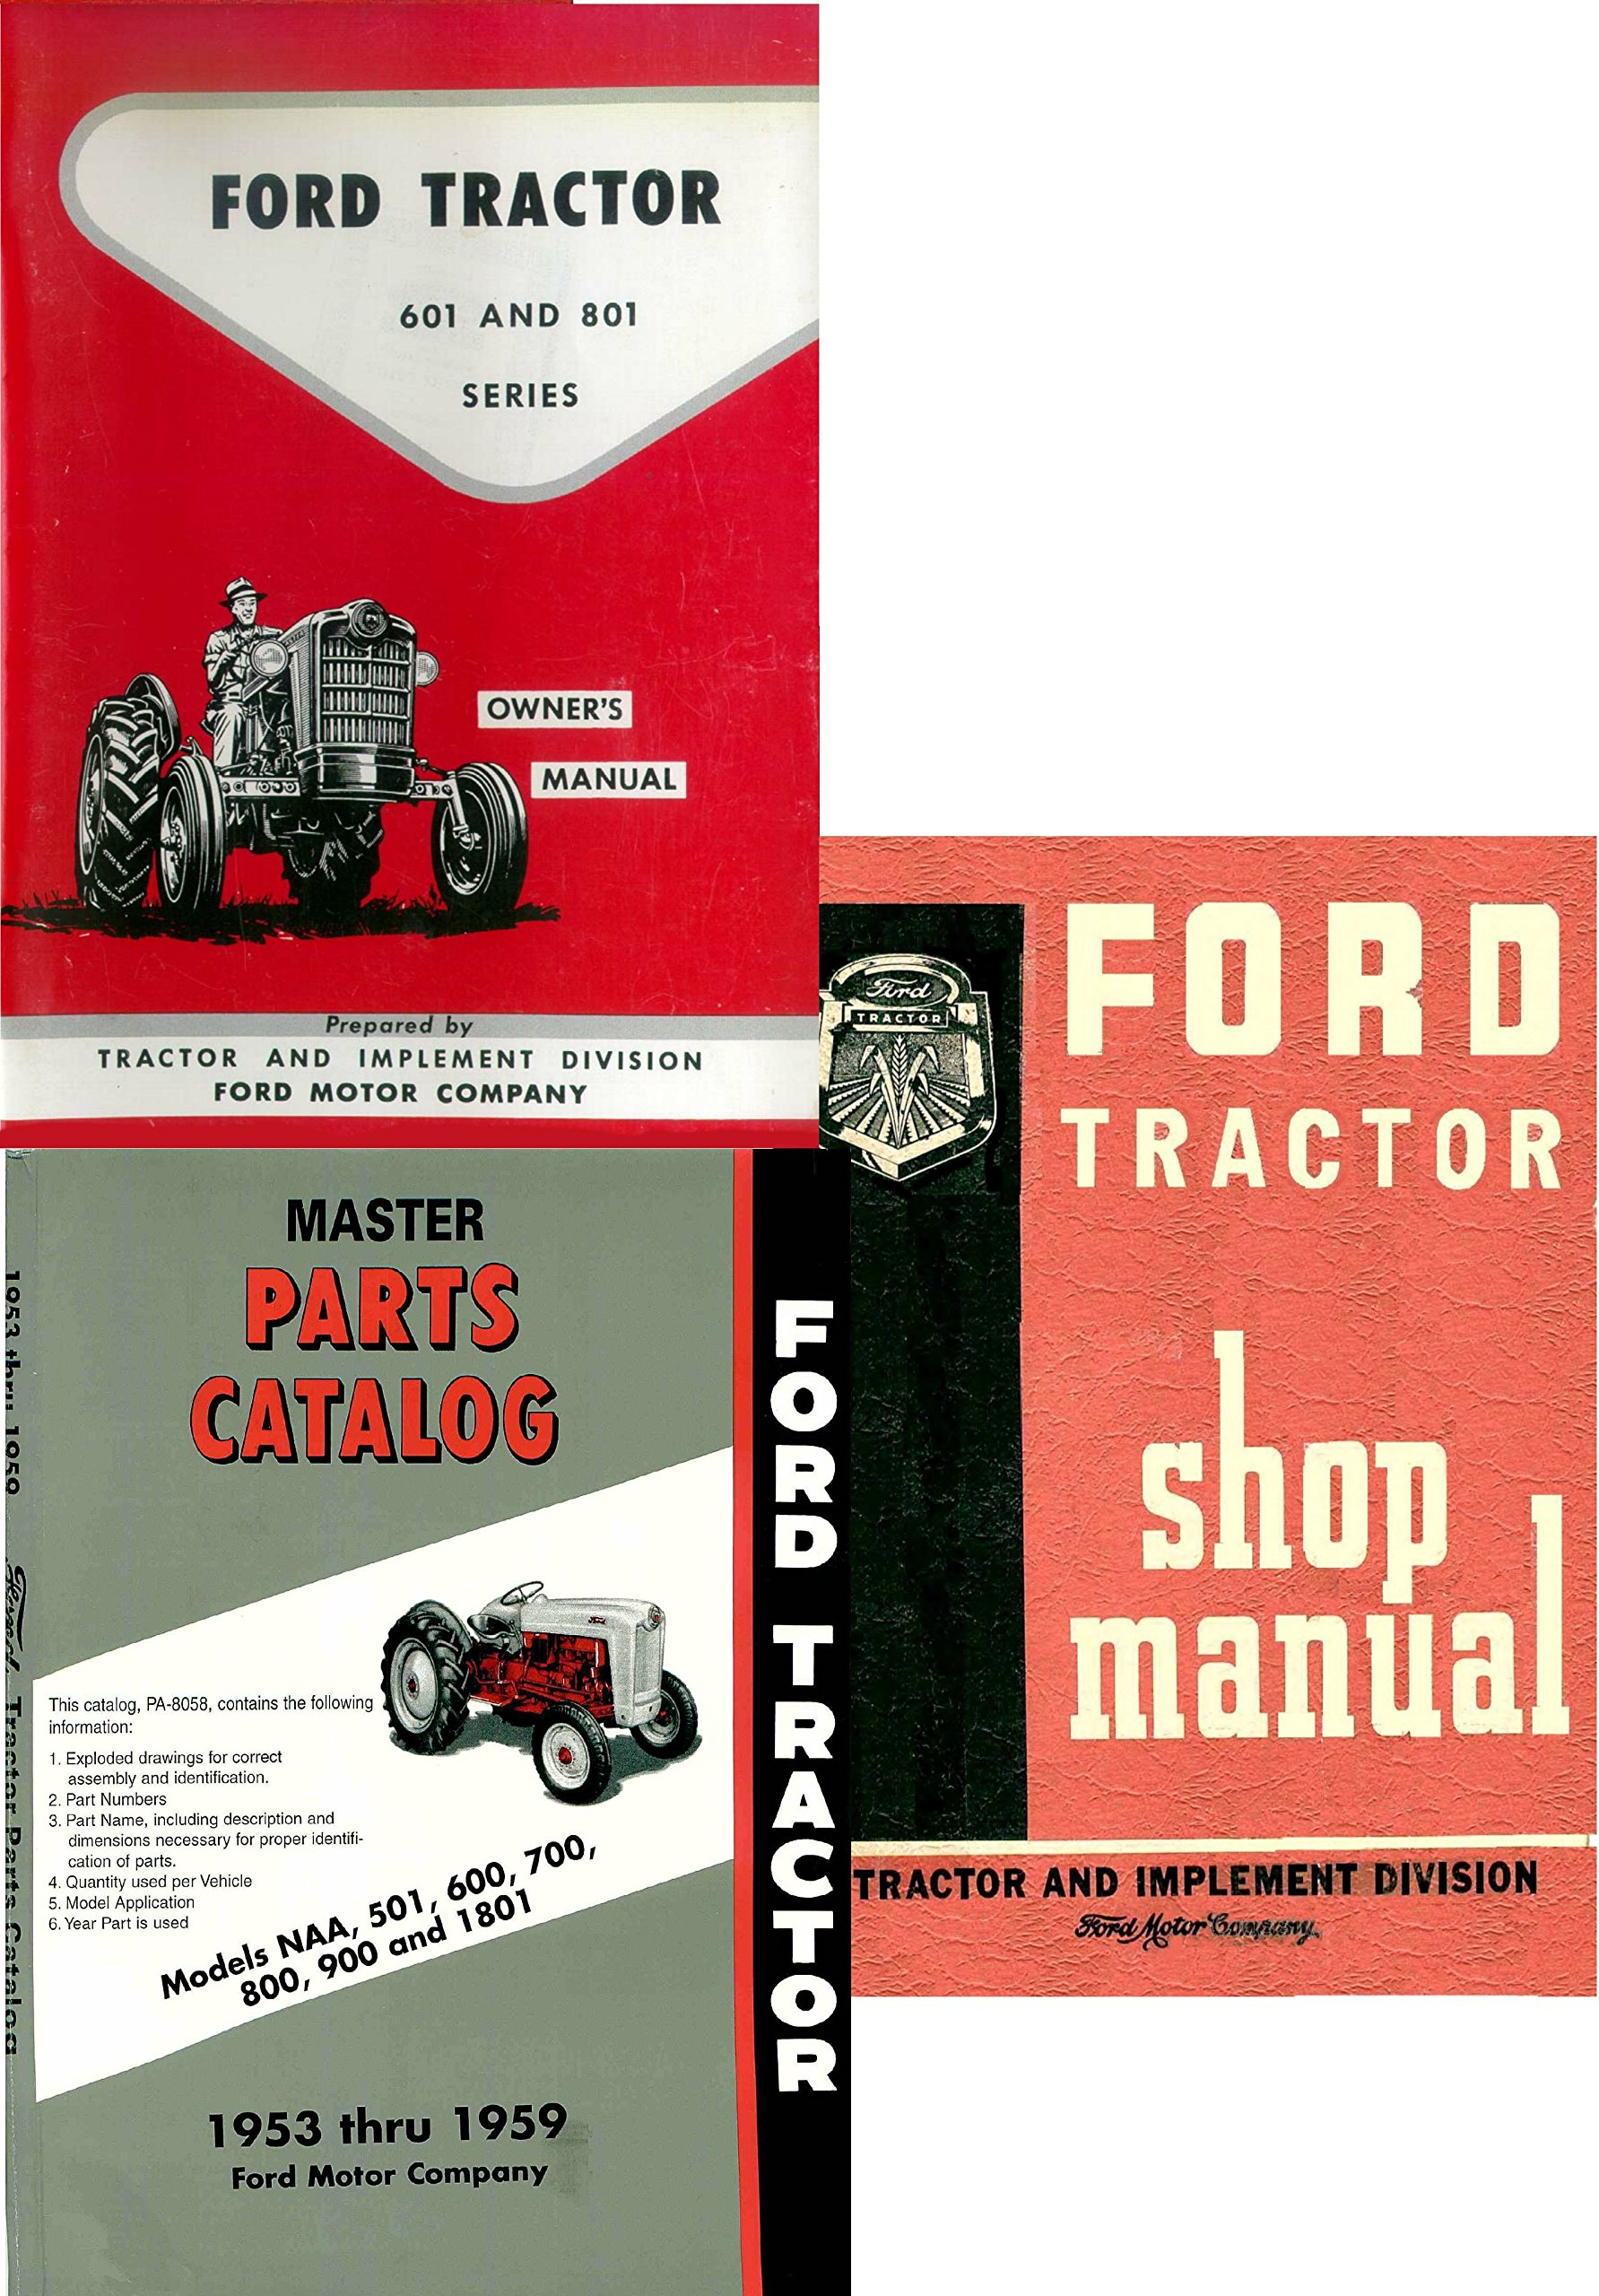 Ford 601/801 Series Tractor 3 Manual Reprint Set Paperback: FORD,  A1TractorManuals: 0763616420197: Amazon.com: Books